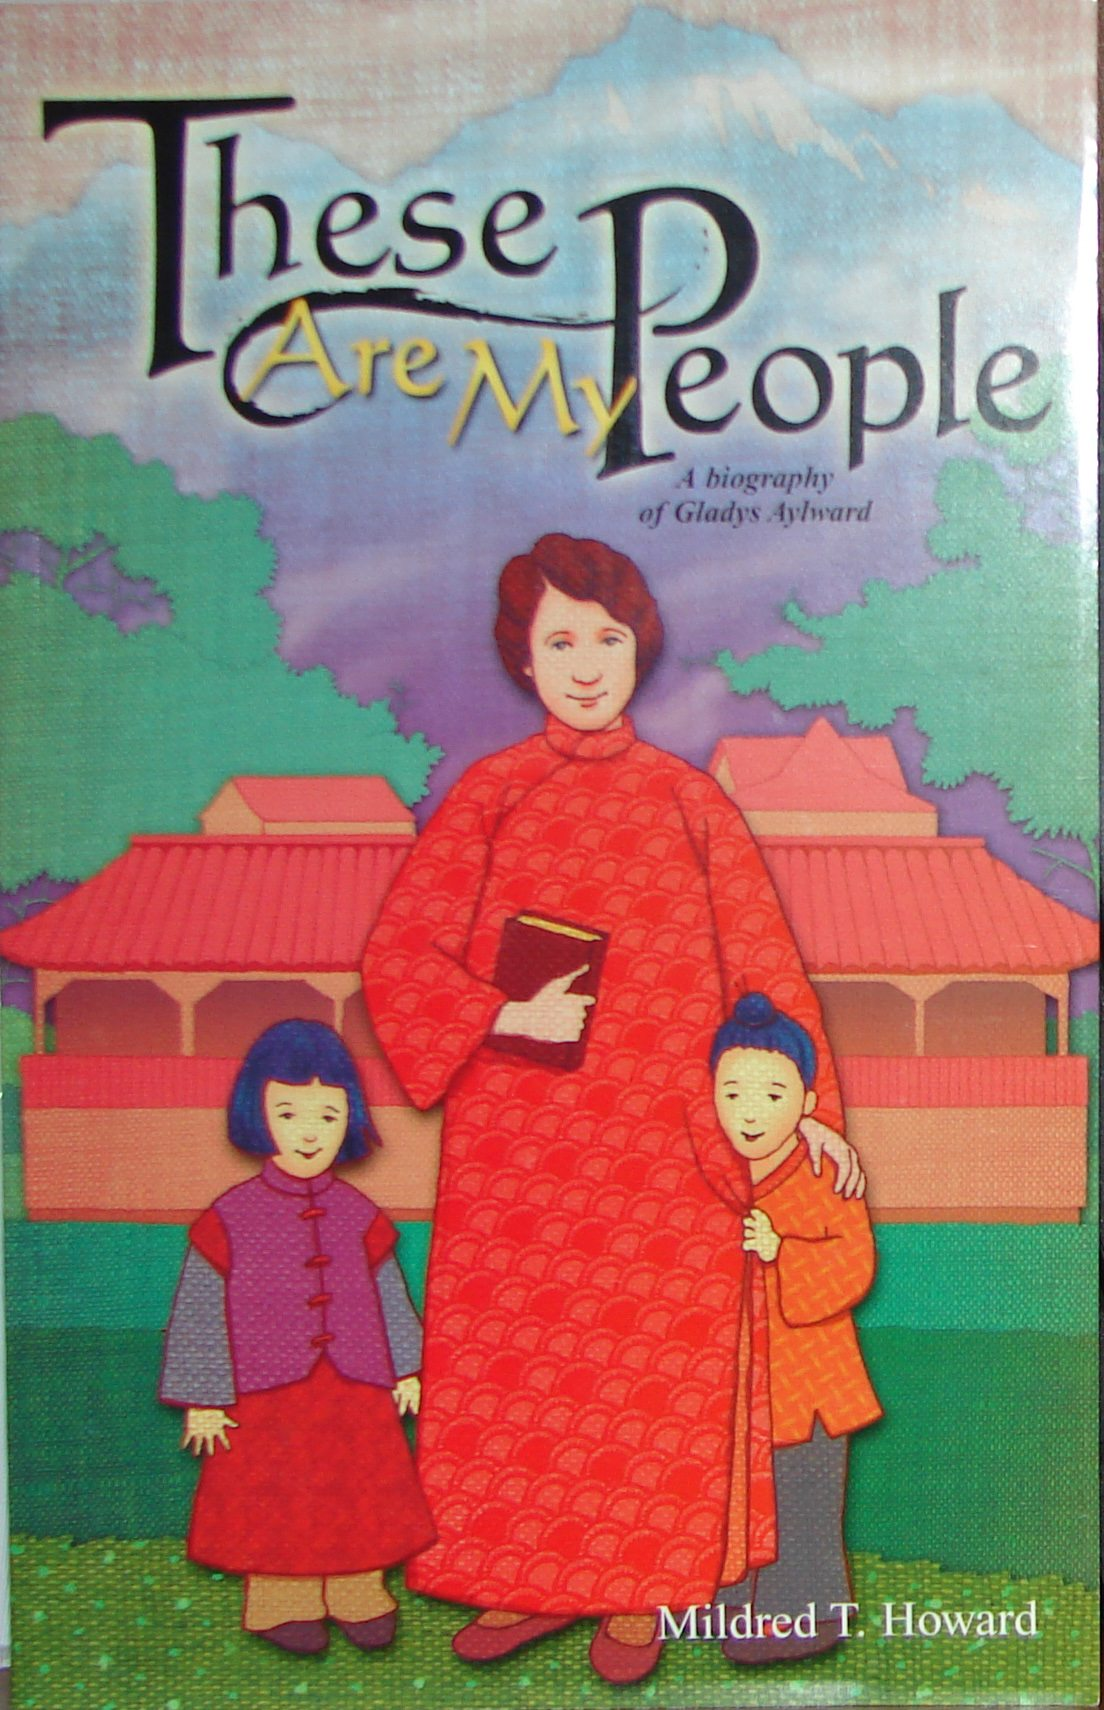 These Are Their Stories More Features Mariska Hargitay: These Are My People: A Biography Of Gladys Aylward